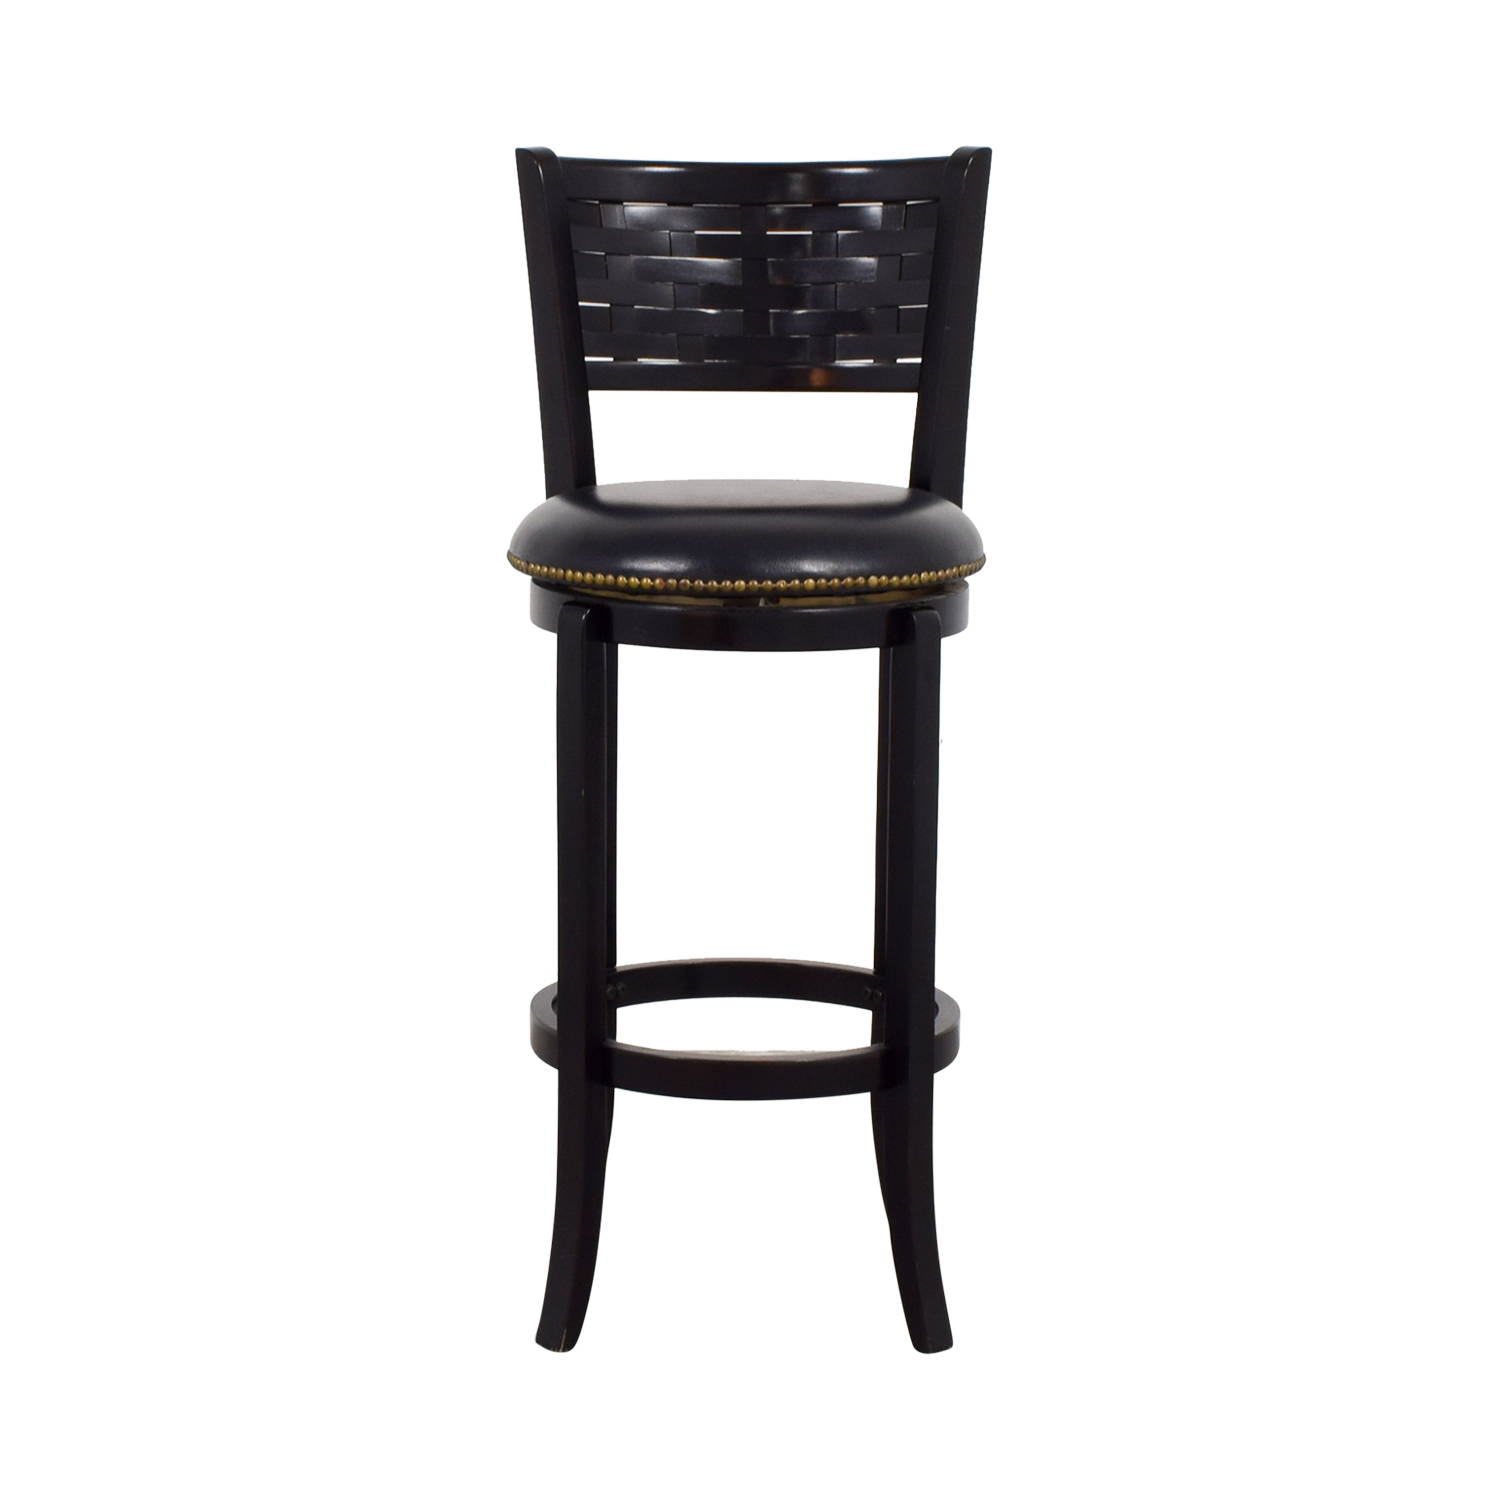 buy Black Leather with Nailhead Swivel Bar Stool Chairs